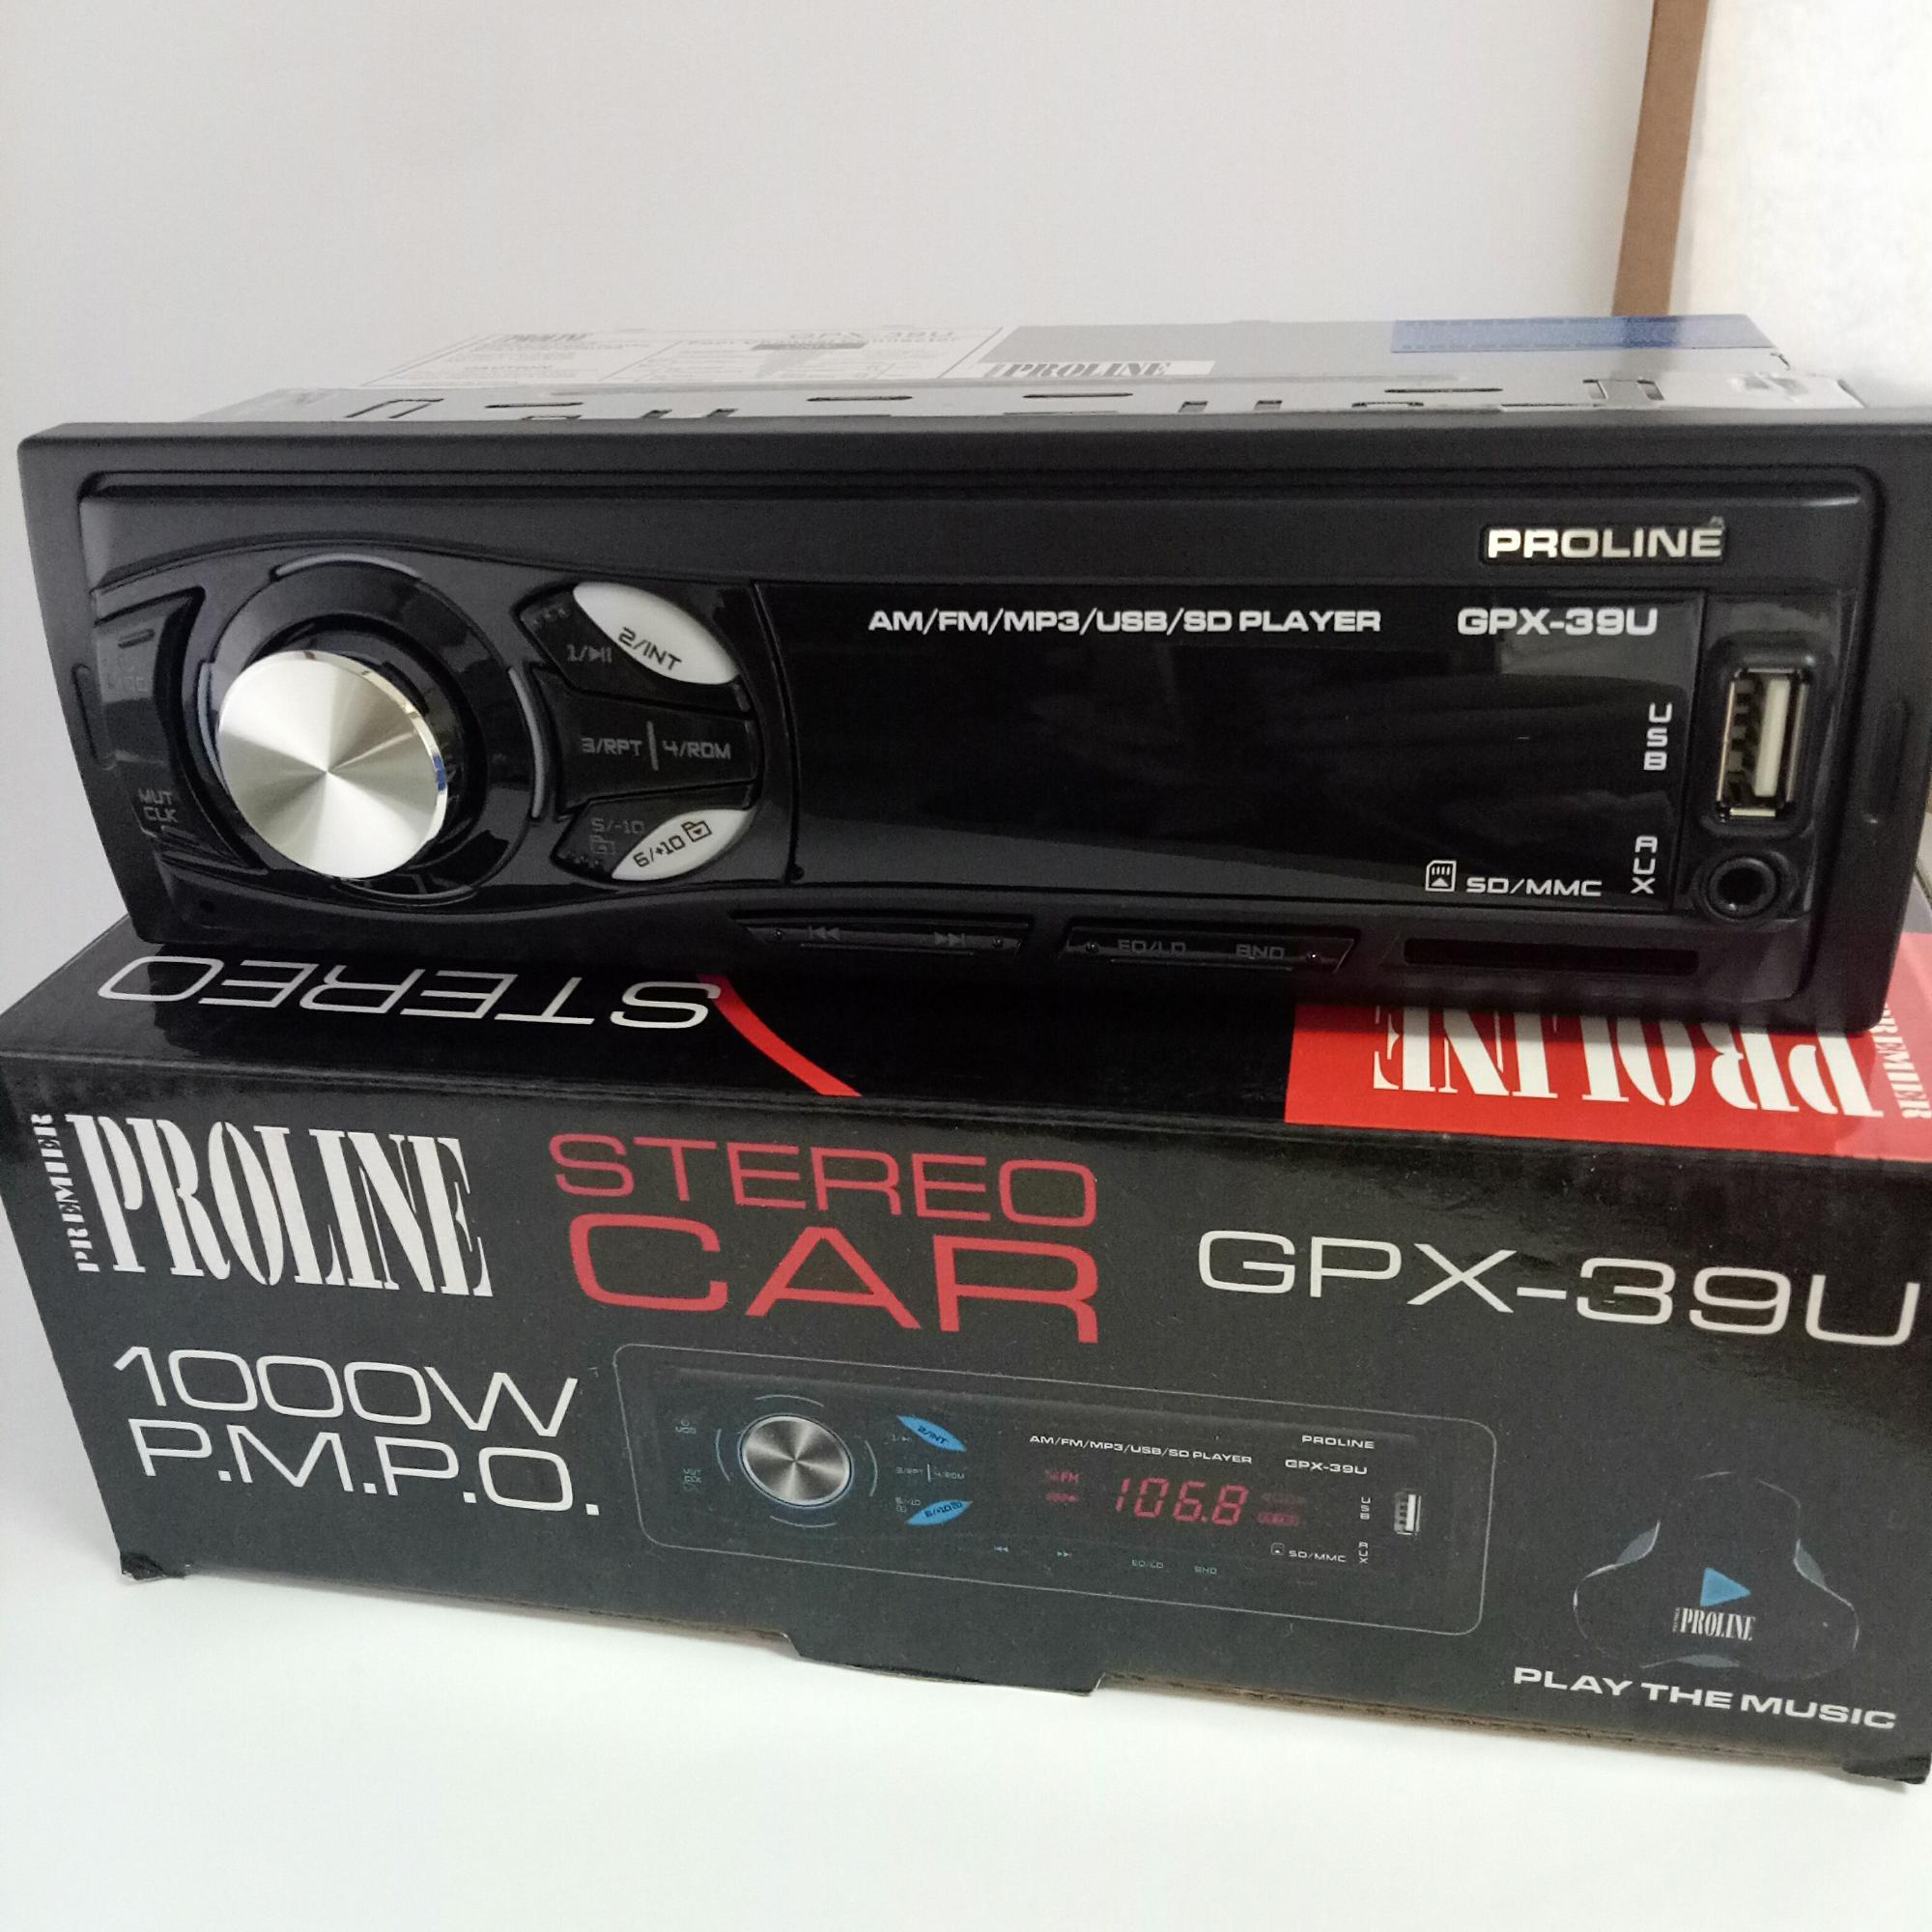 Car Stereo For Sale Cars Online Brands Prices 2002 L300 Radio Wiring Color Proline Gpx 39bt W Am Fm Bluetooth Usb